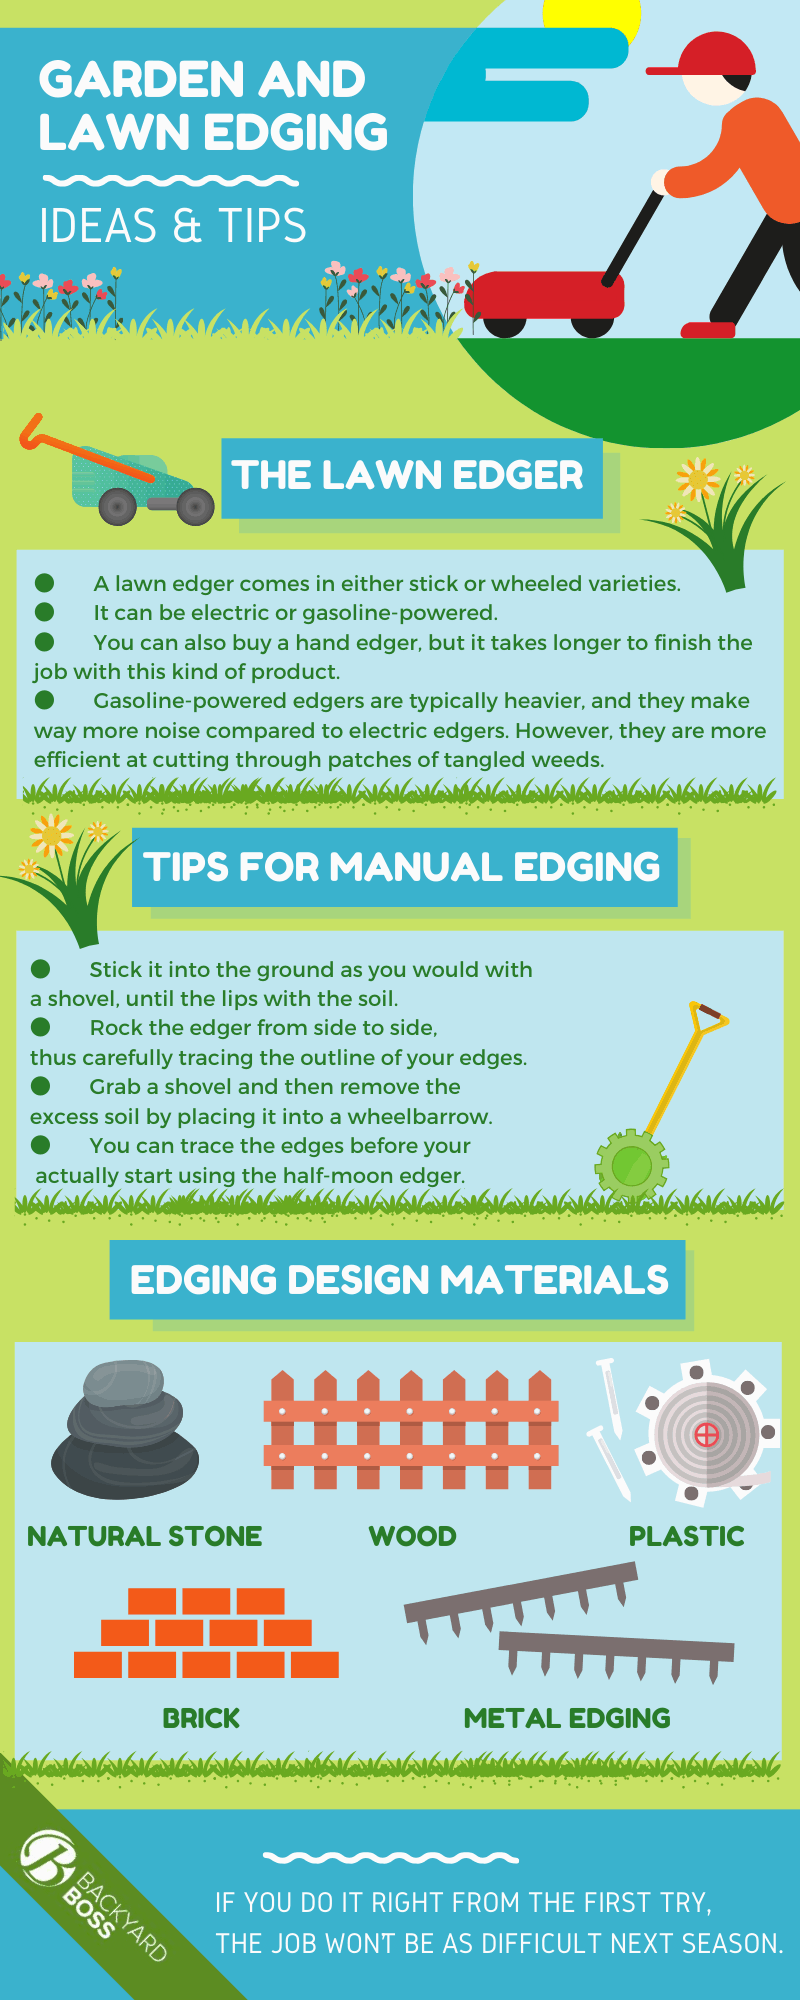 Garden and Lawn Edging Ideas & Tips - infographic